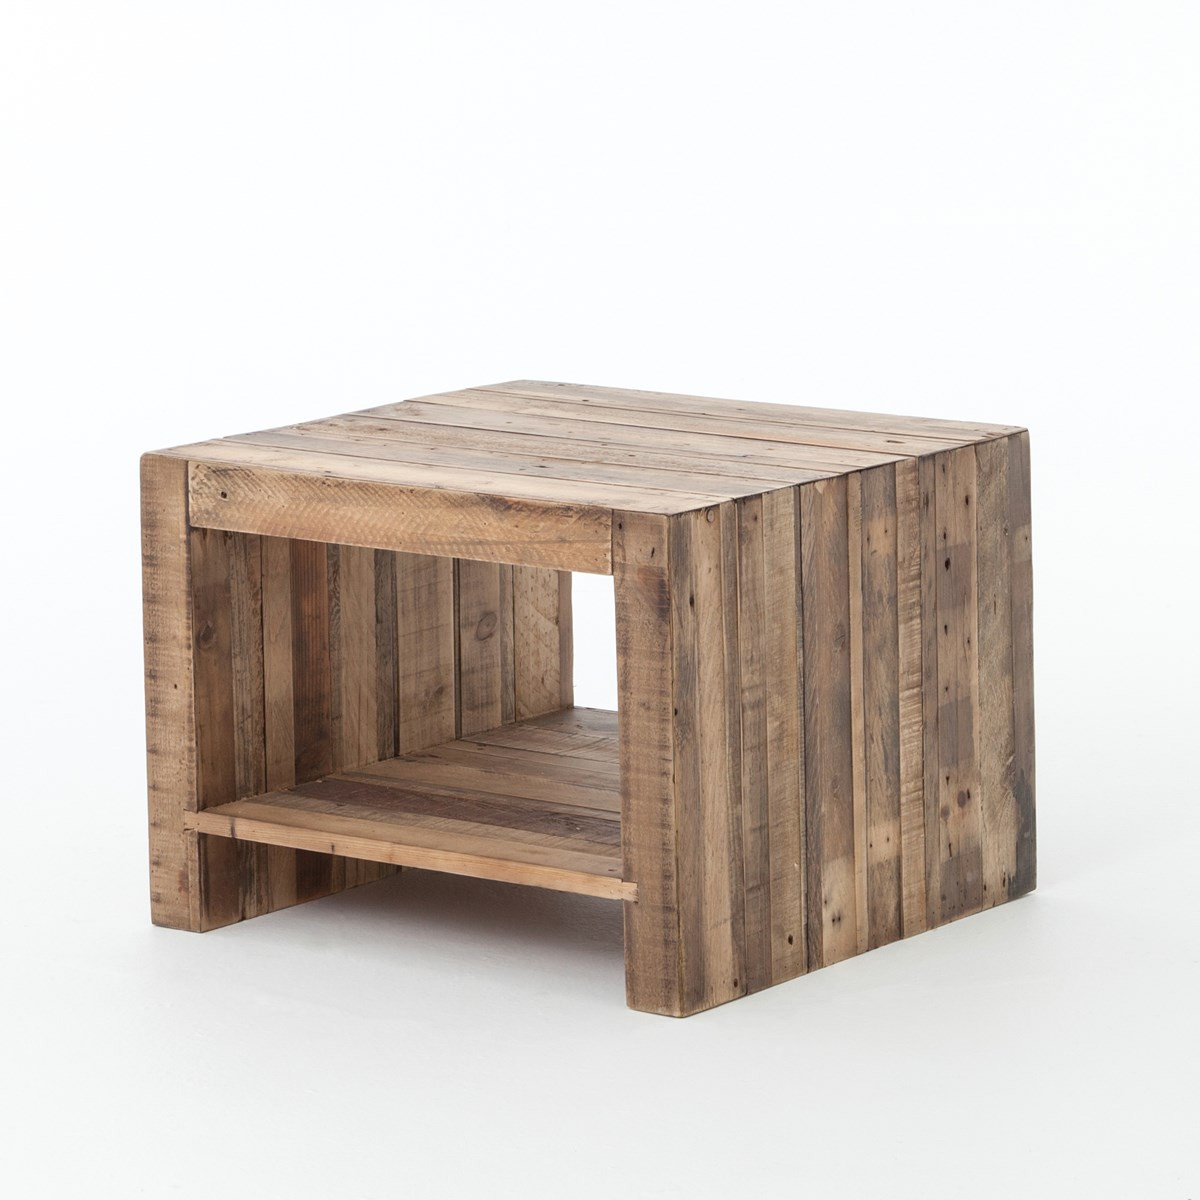 Angora Reclaimed Wood Square End Table ... - Angora Reclaimed Wood Square End Table Zin Home